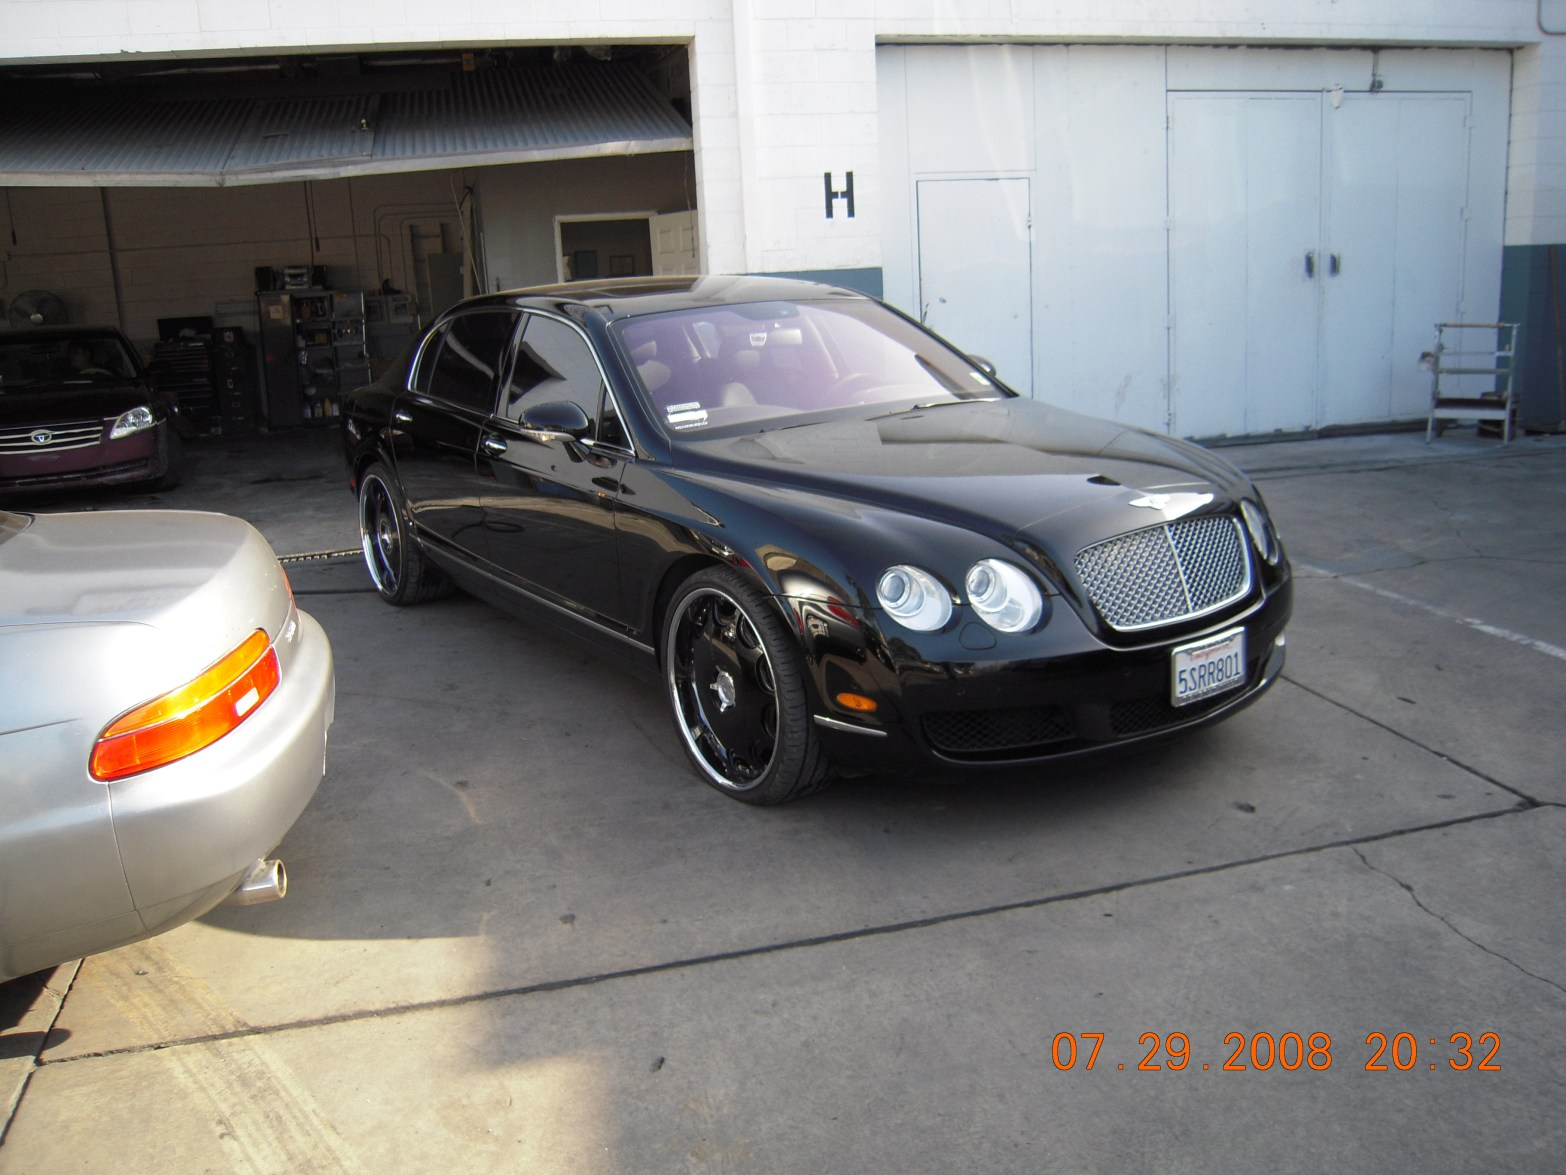 west-coast-body-and-paint-black-bentley-4